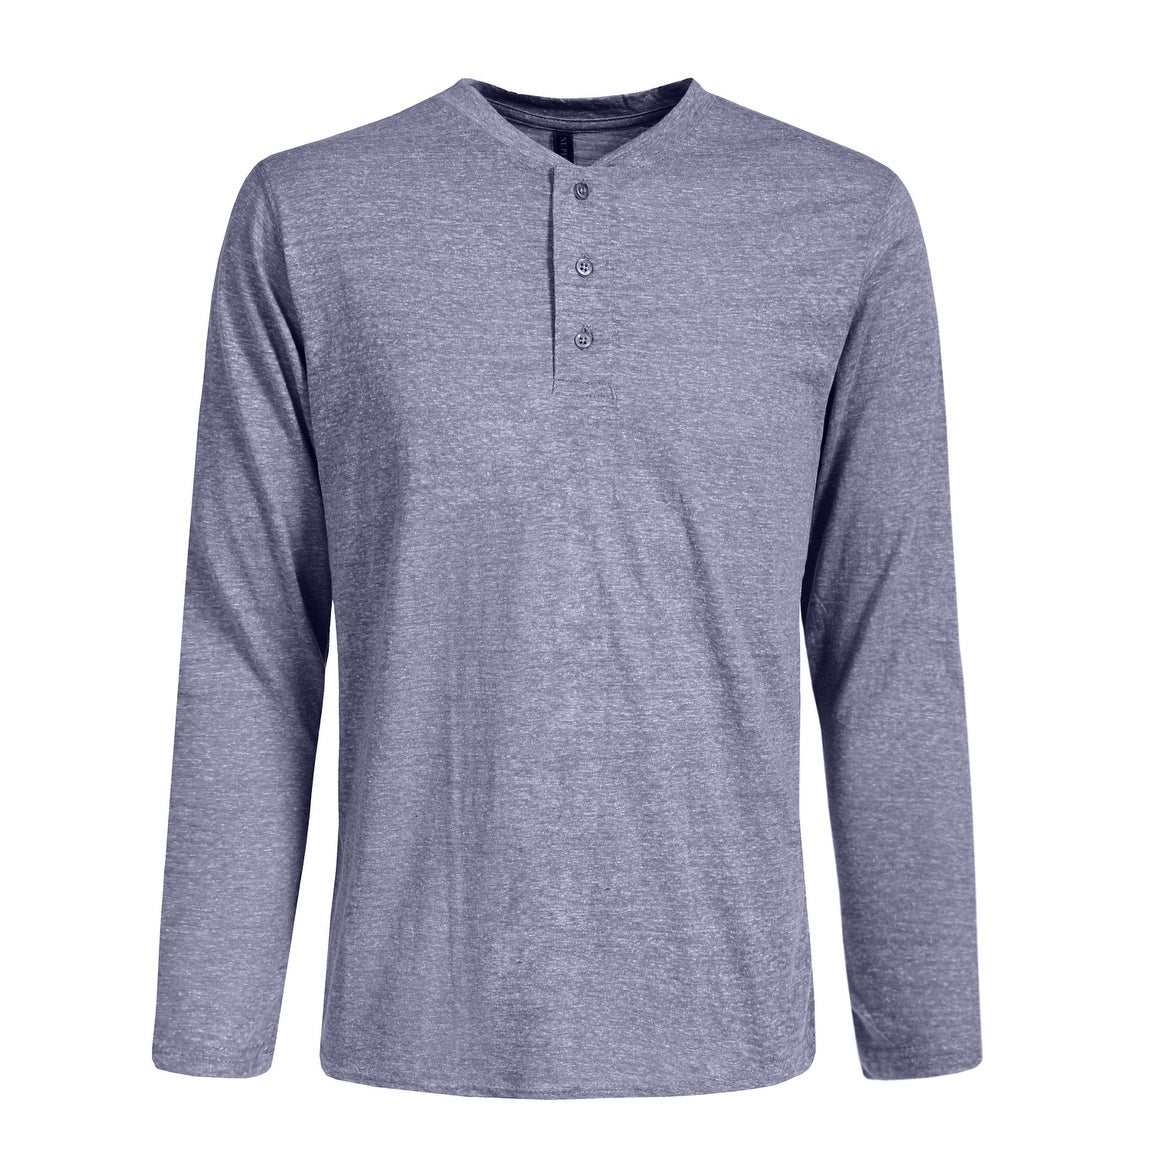 208b1fba Shop NE PEOPLE Mens Half Button Down Henley Long Sleeve T-Shirts [NEMT274]  - Free Shipping On Orders Over $45 - Overstock - 19468952